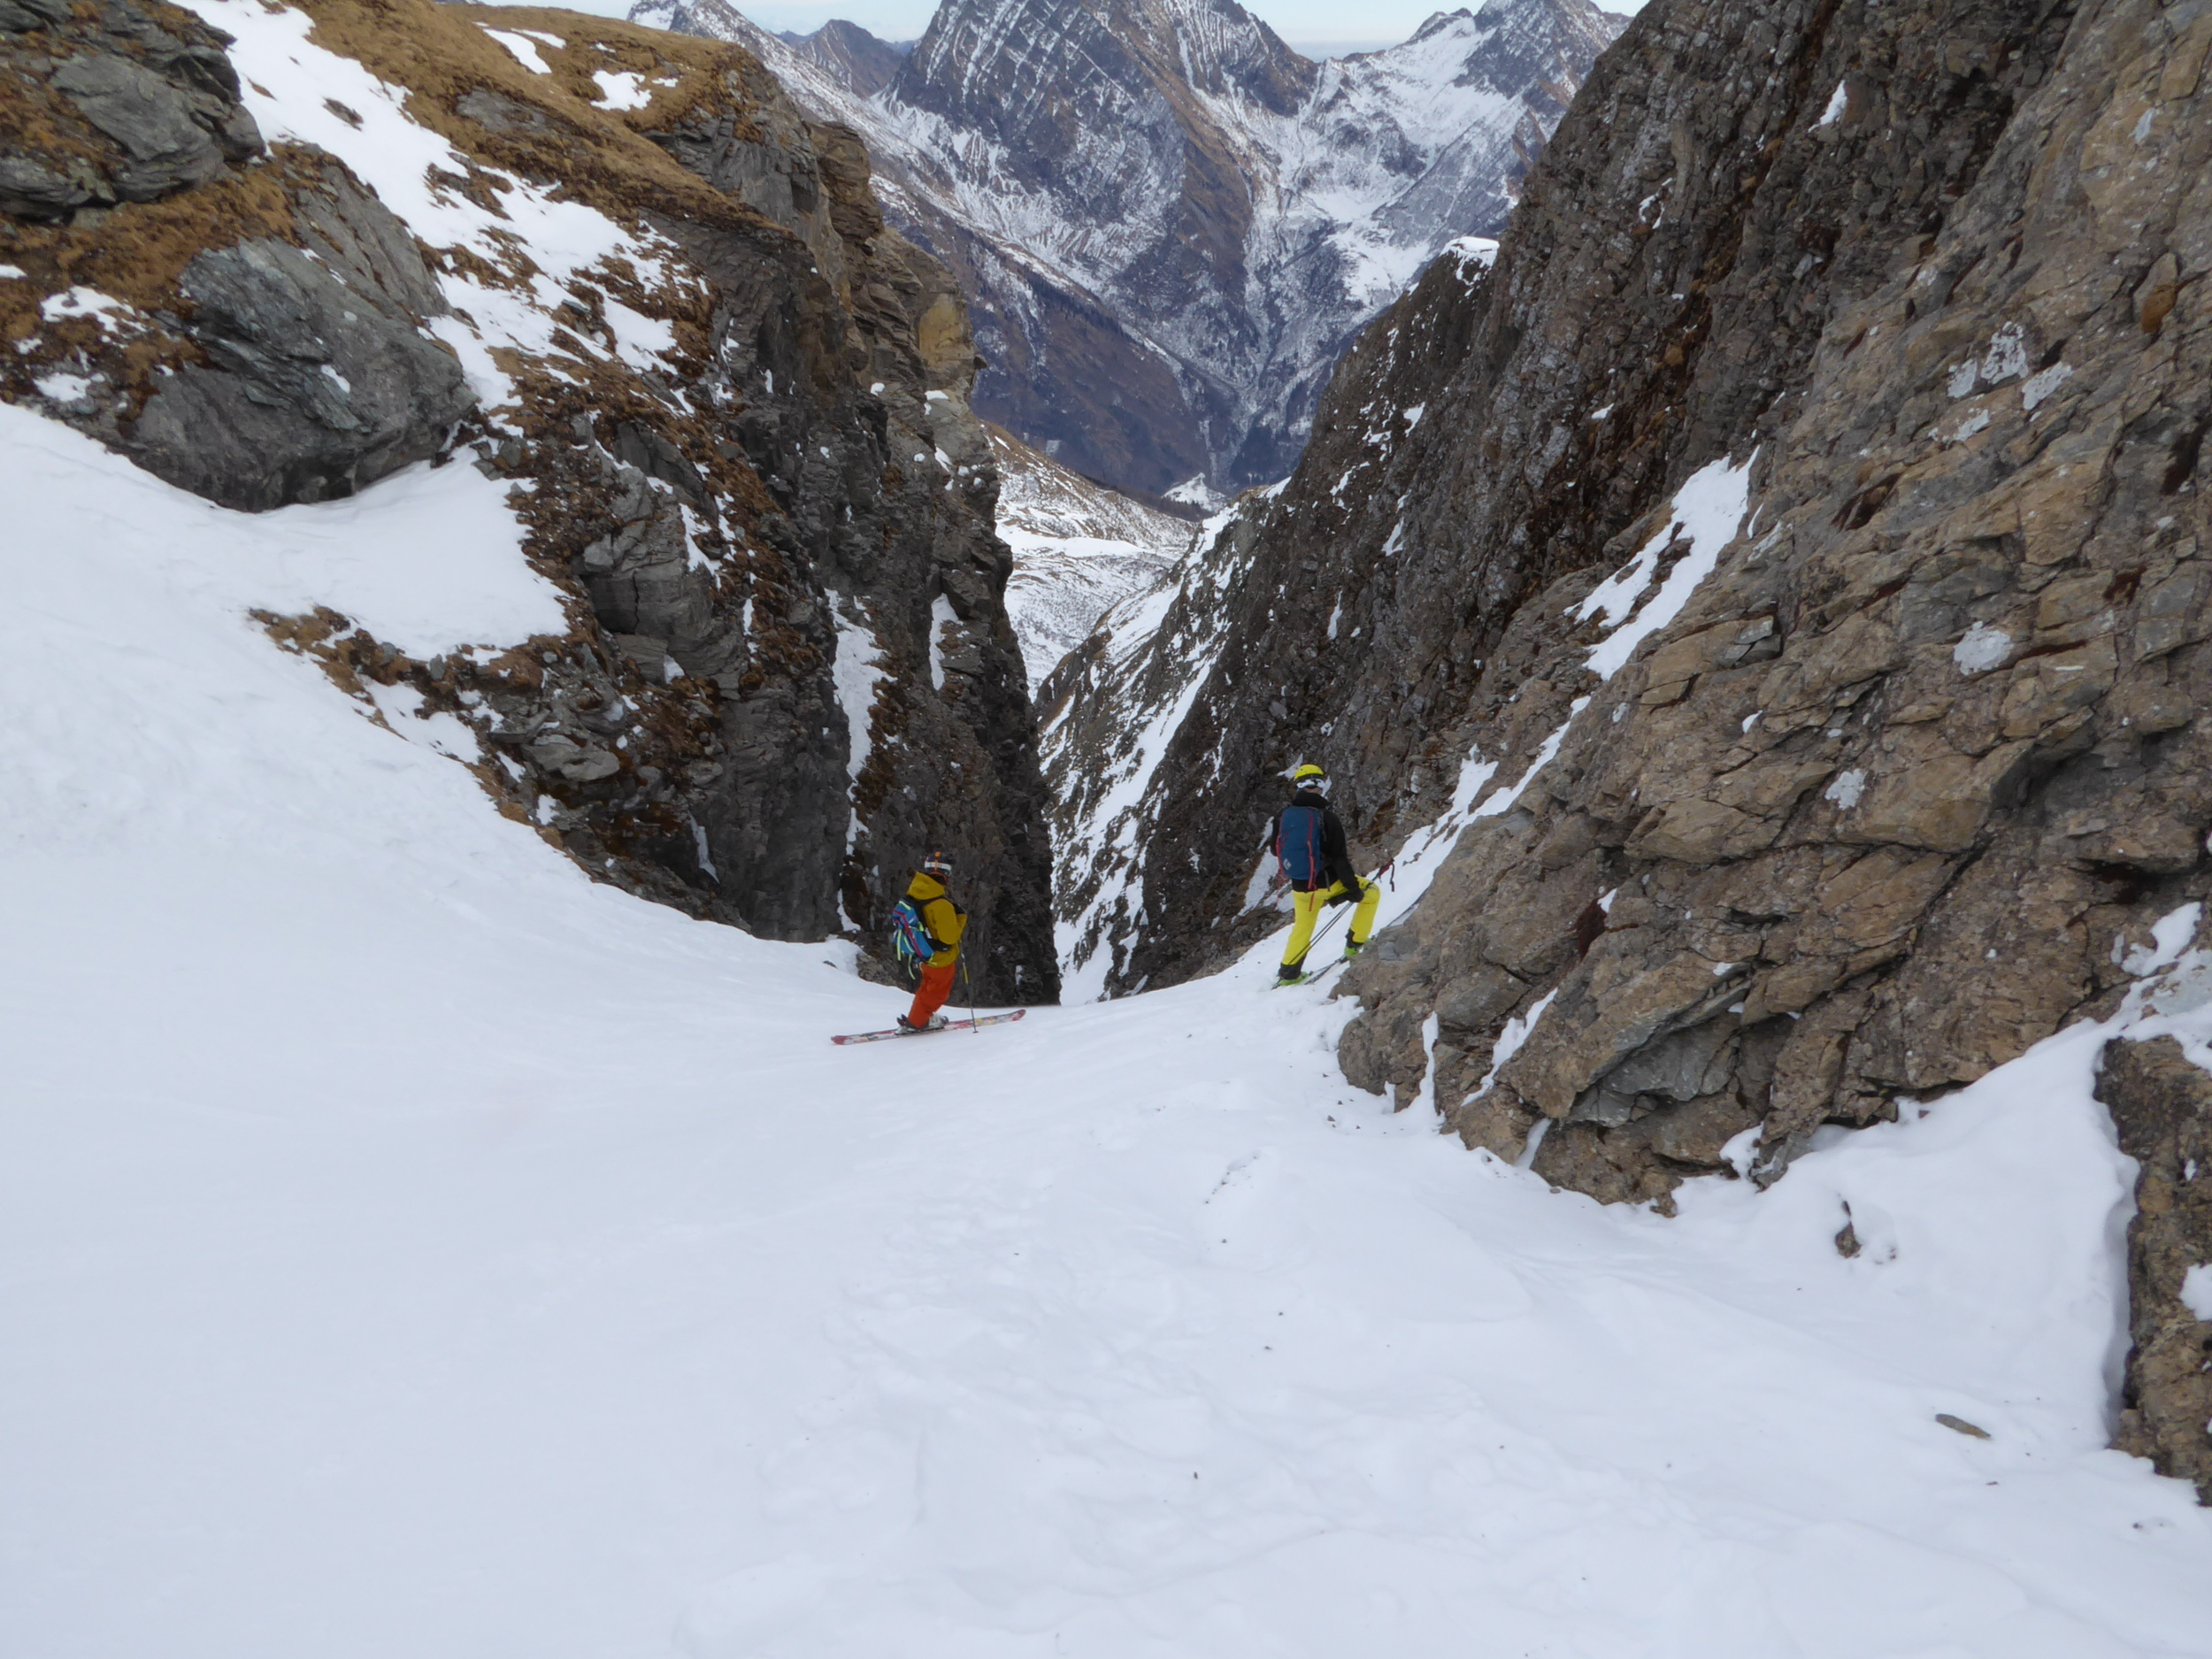 Looking down into the top of the couloir from the photo above